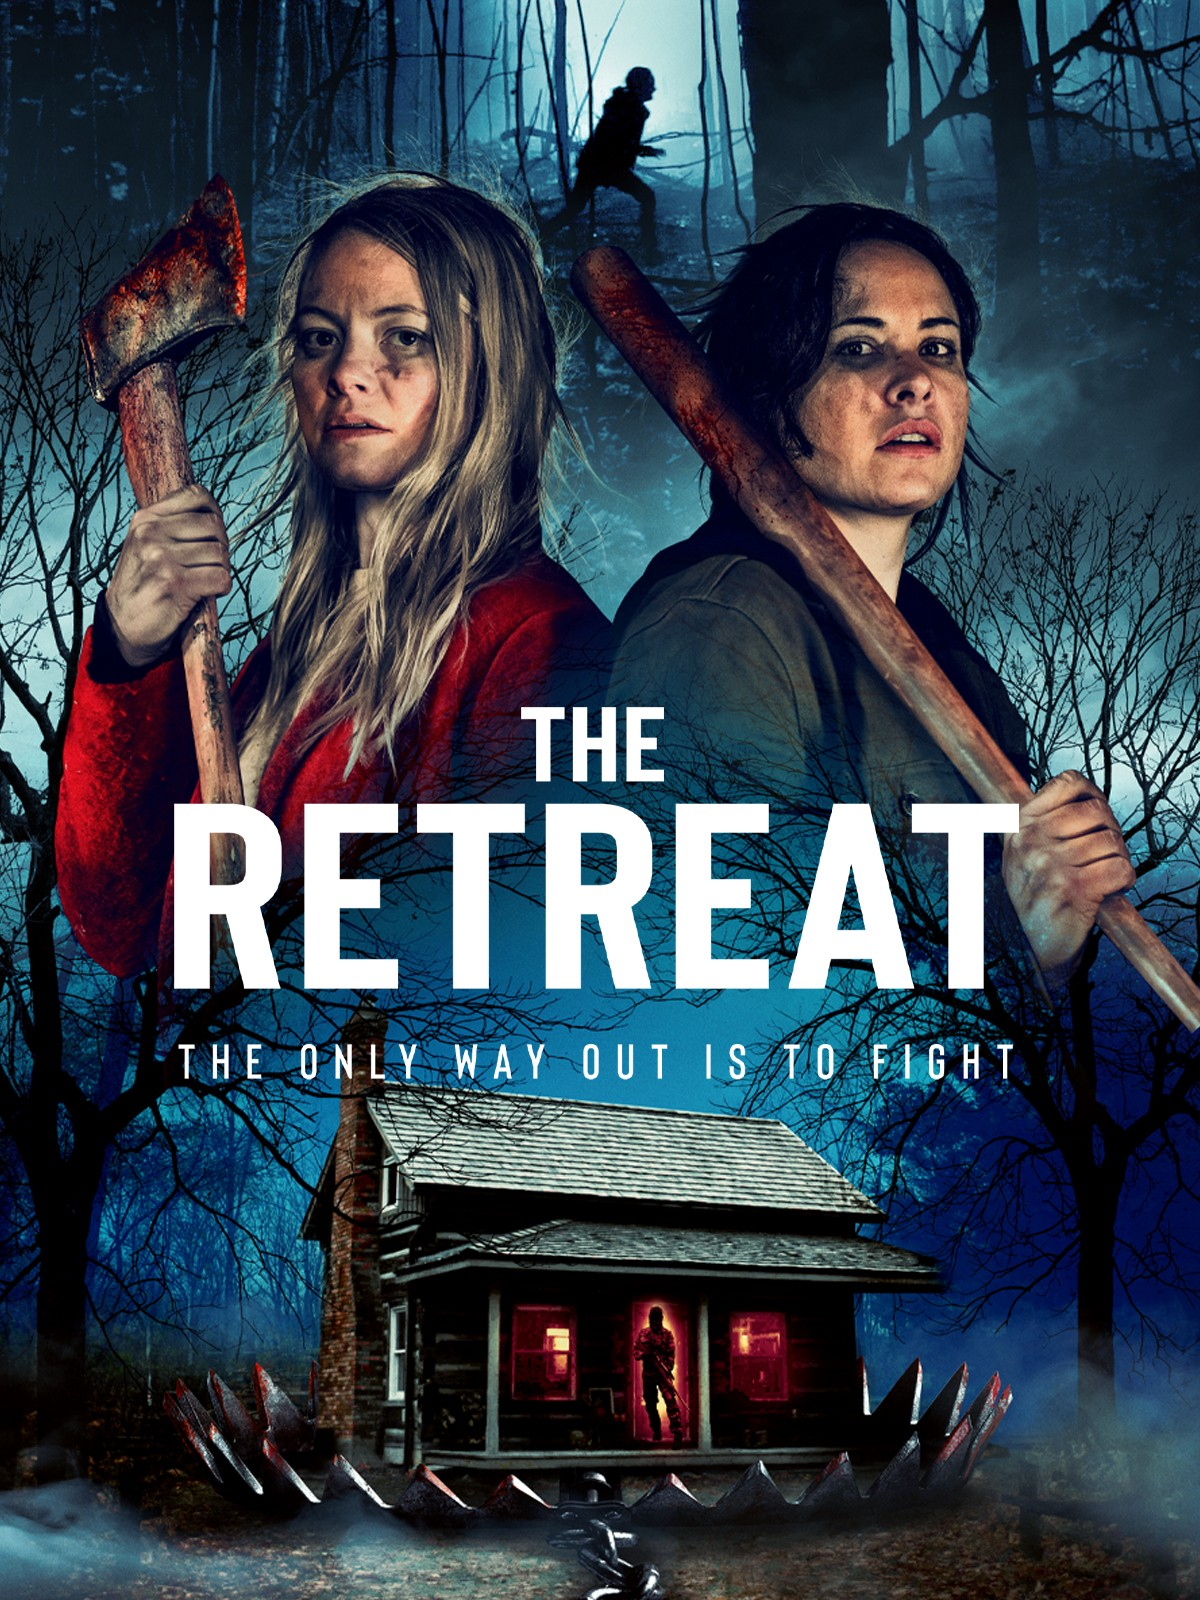 The Retreat (2021) - Rotten Tomatoes